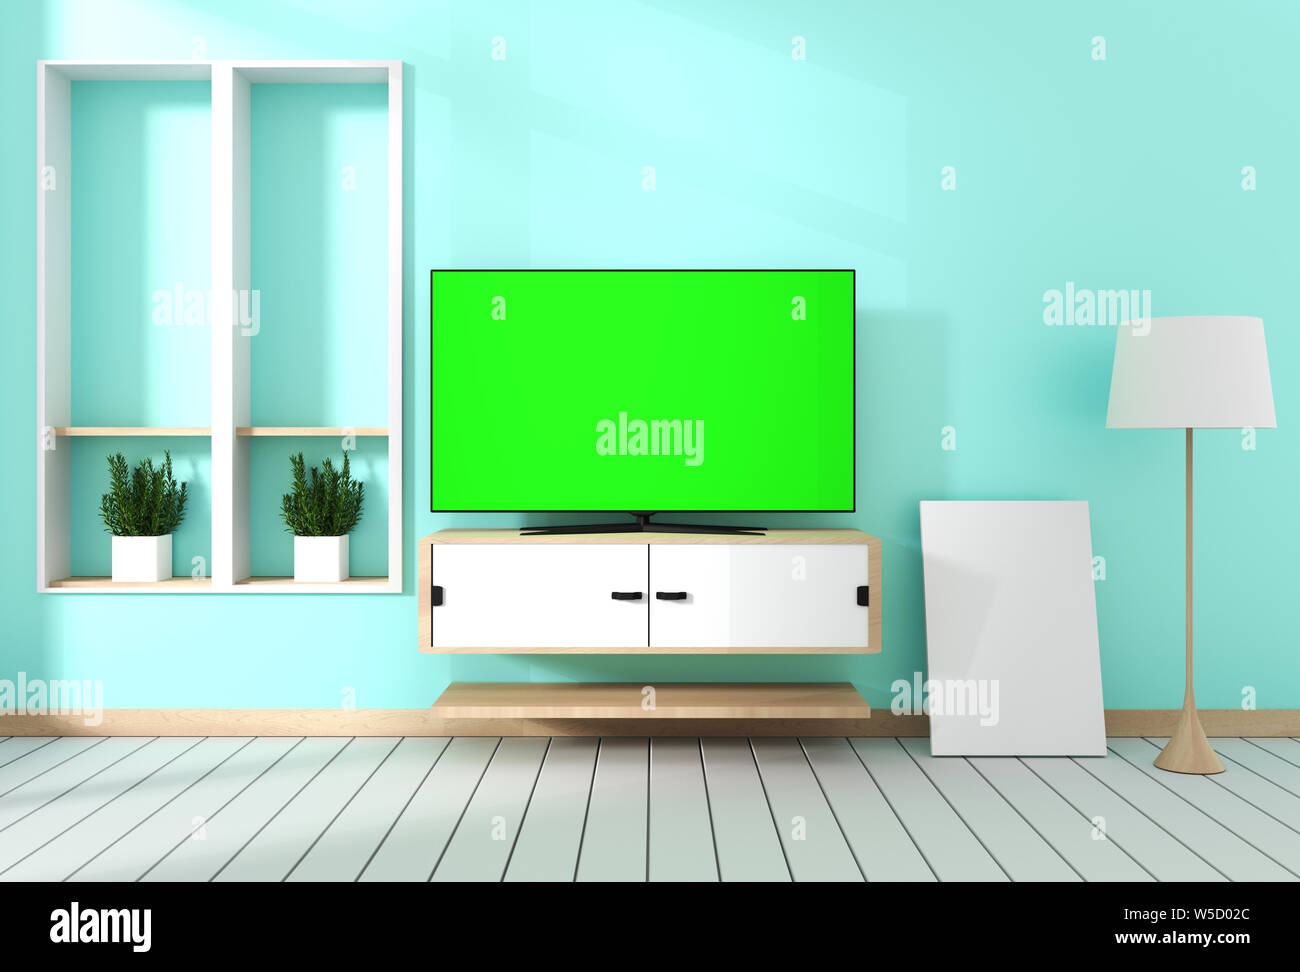 Smart Tv With Blank Green Screen Hanging On Cabinet Design Modern Living Room With Mint Wall On White Wooden Floor 3d Rendering Stock Photo Alamy